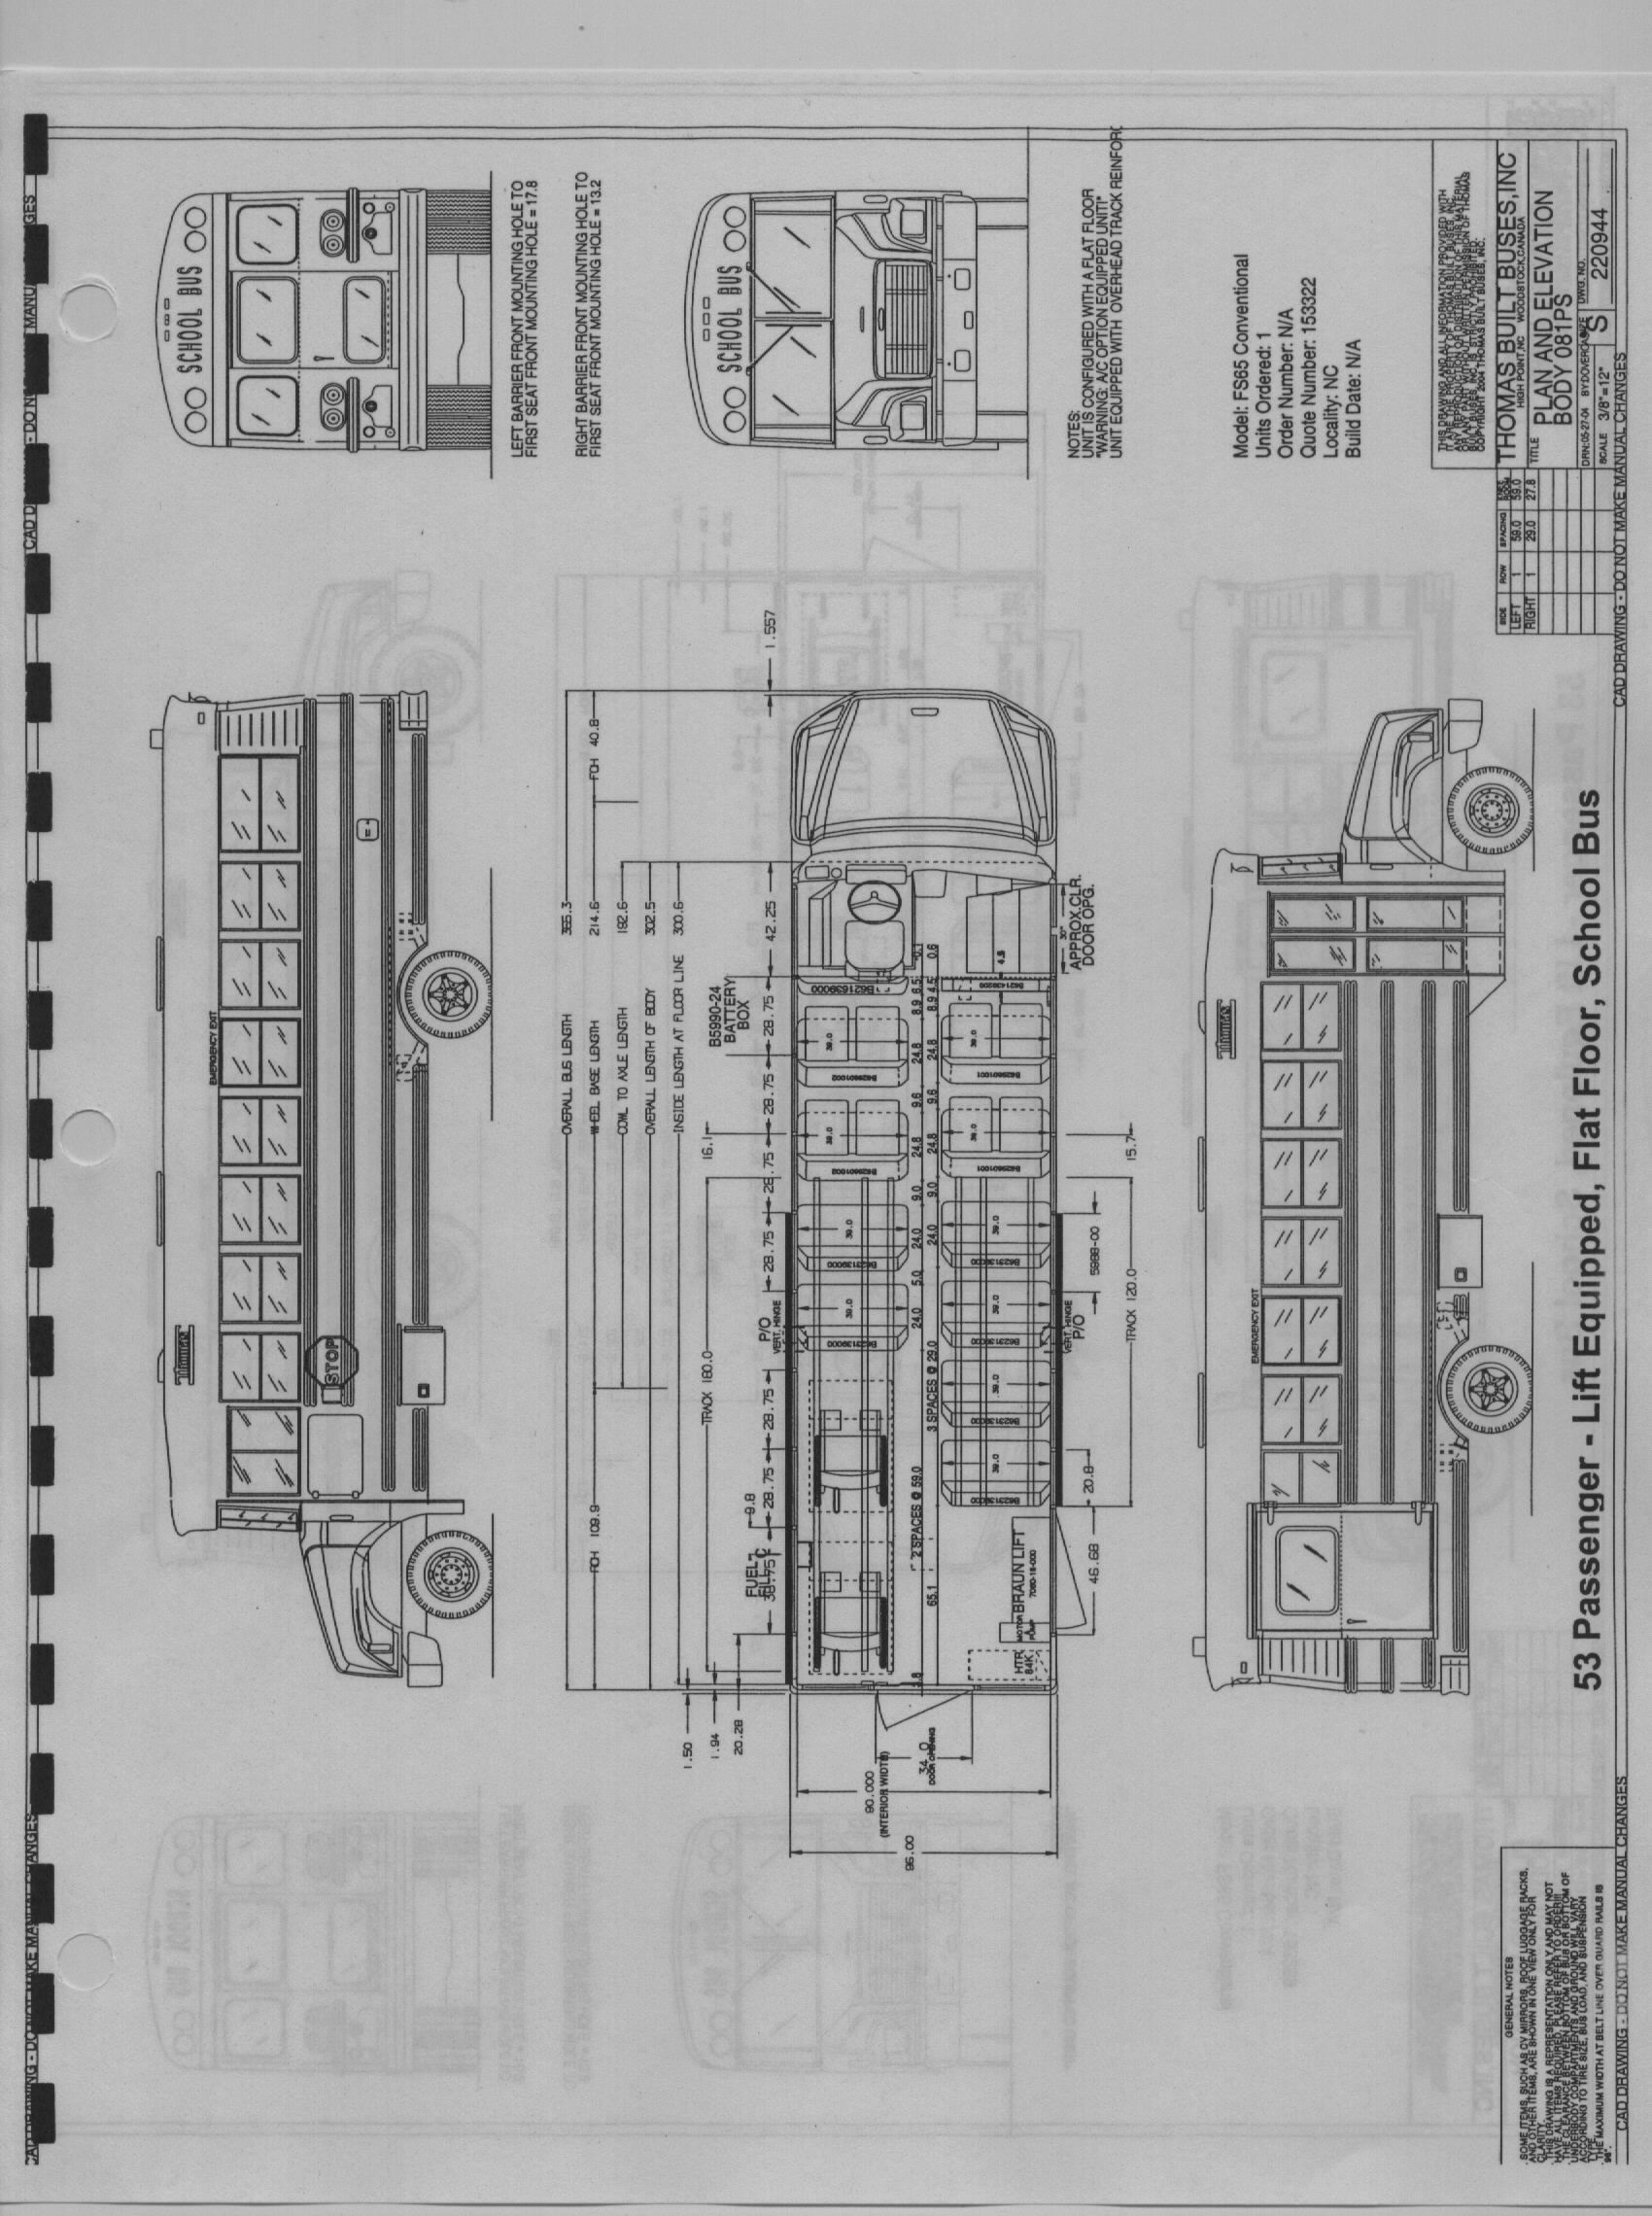 53 Flat Floor Lift school bus models wiring diagram for thomas built school bus at panicattacktreatment.co